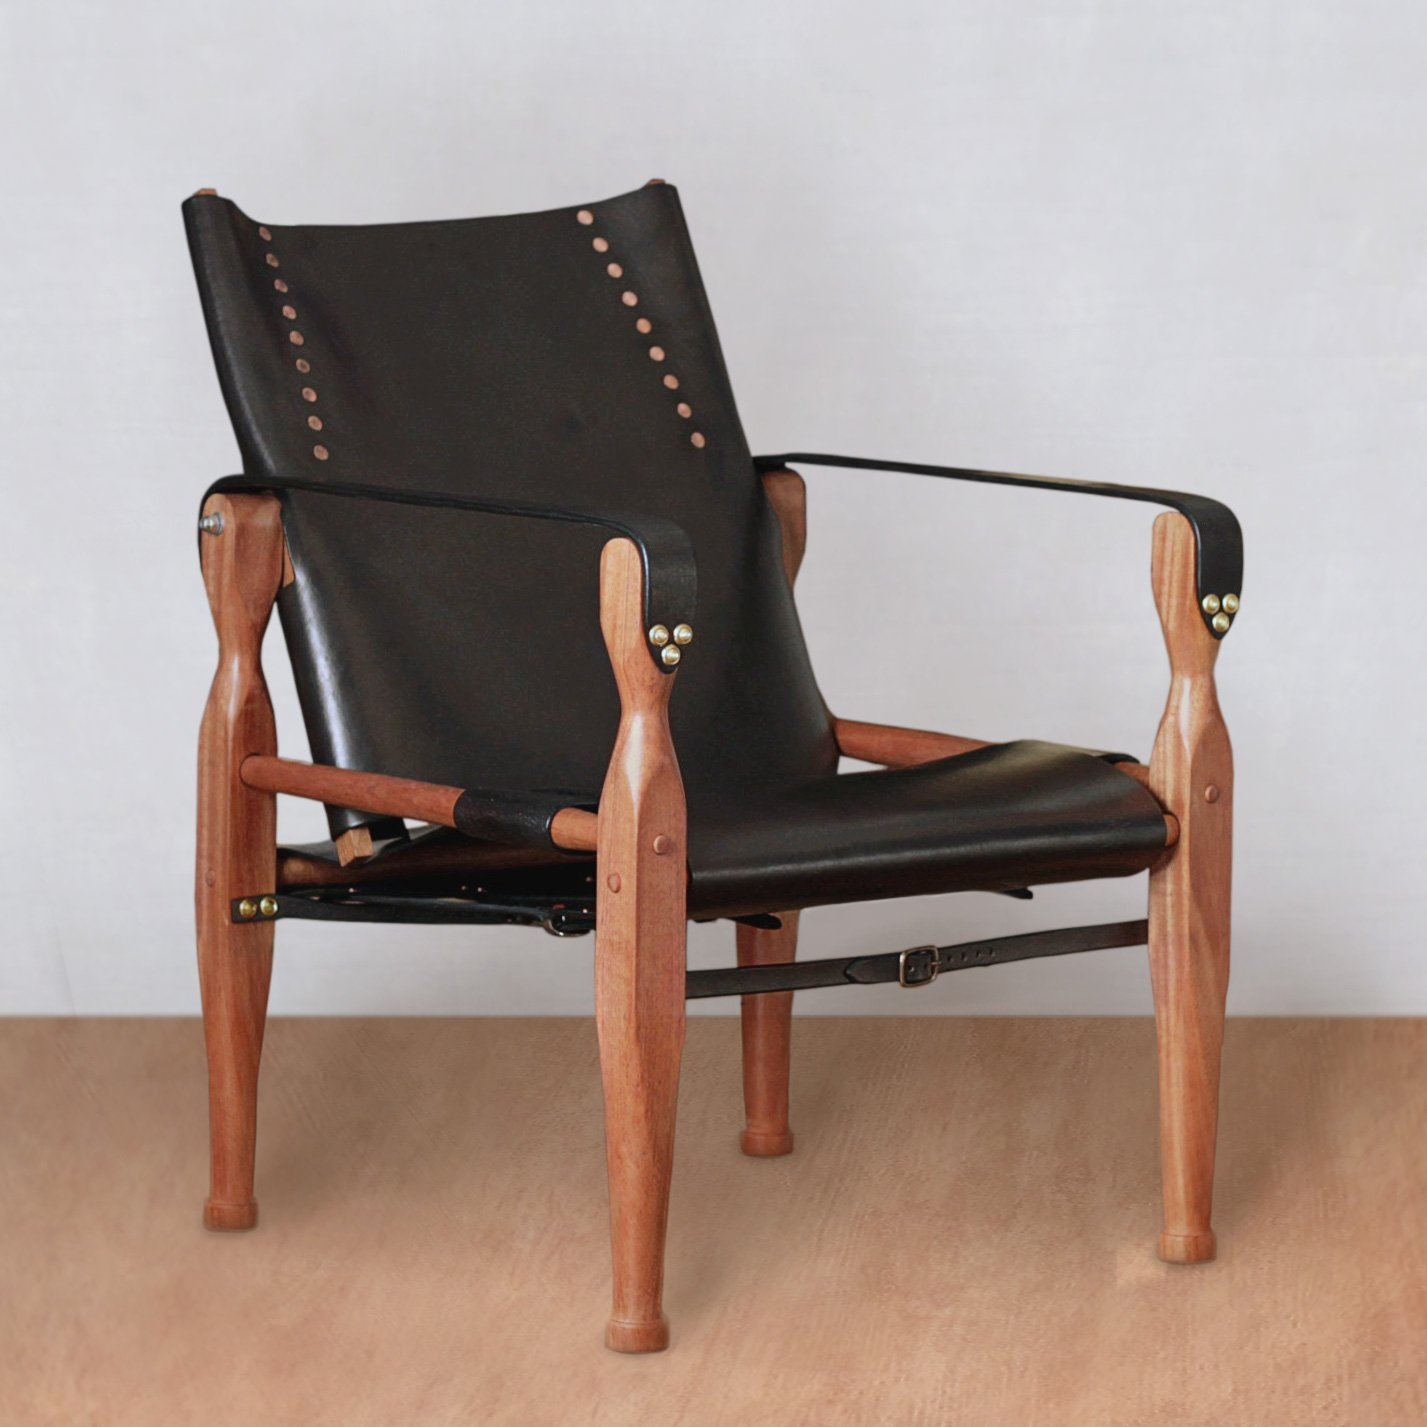 New Ideas Chair Wood Leather